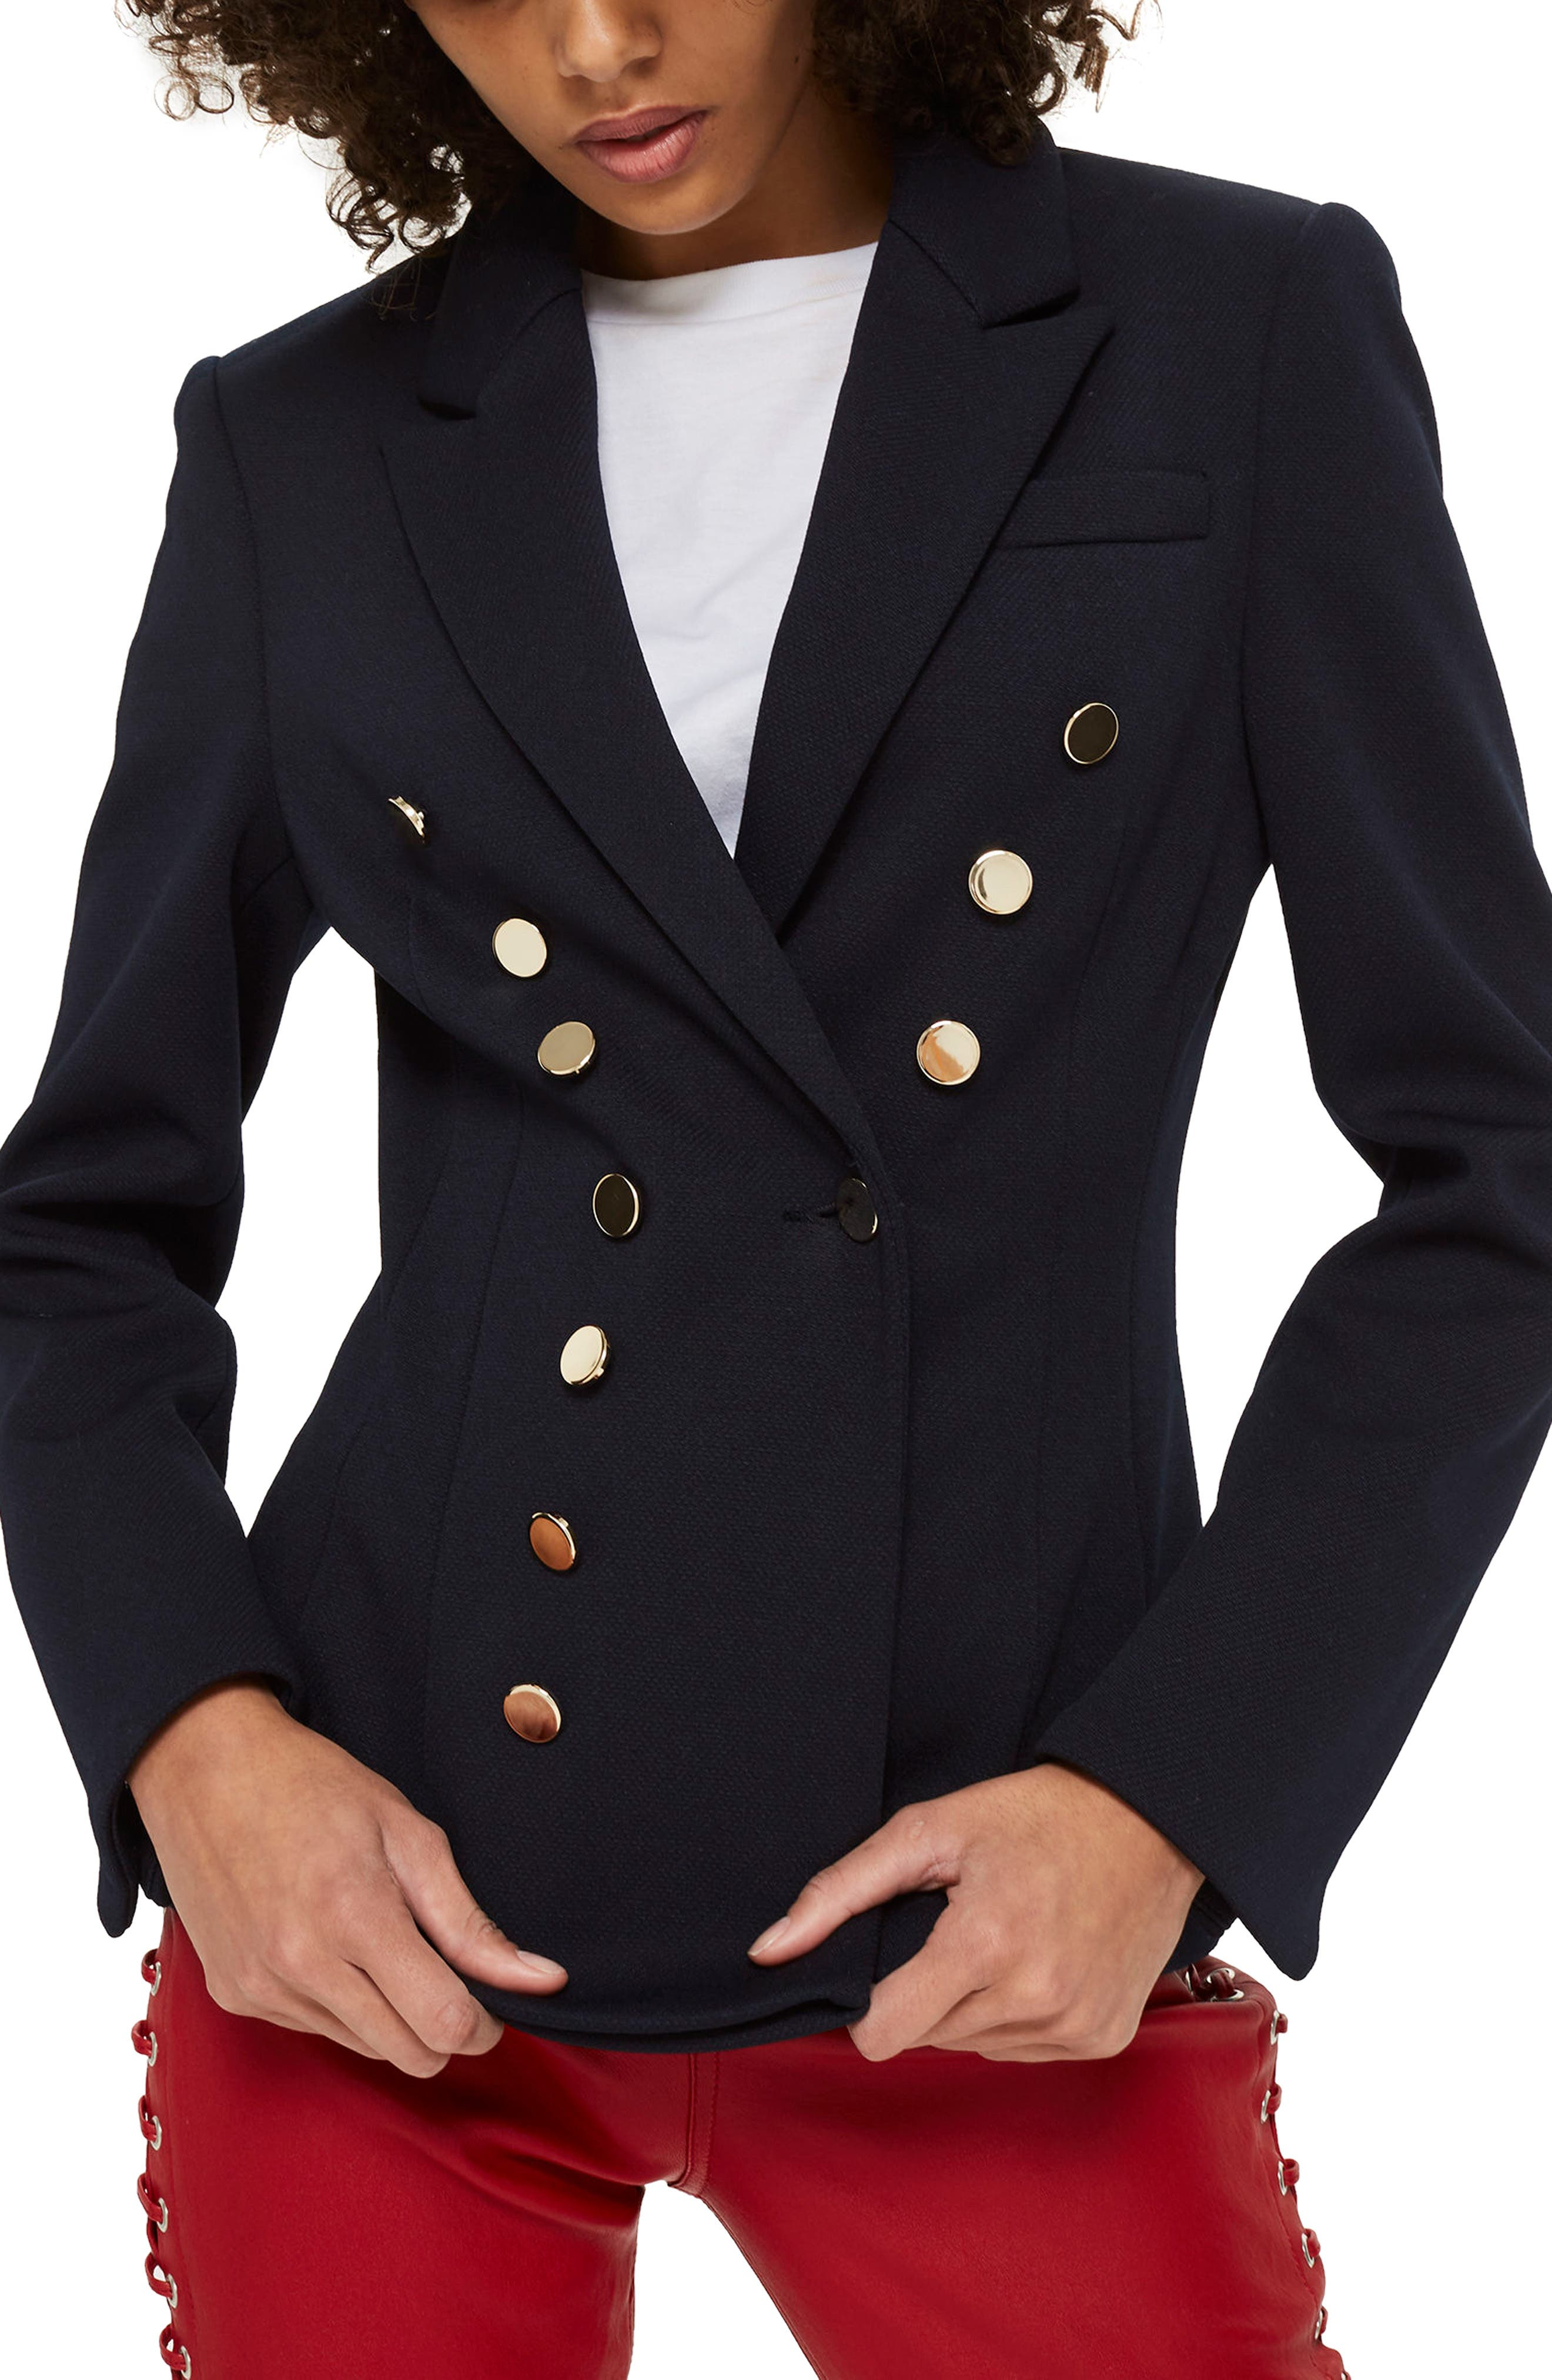 Golden Button Double Breasted Jacket,                             Main thumbnail 1, color,                             Navy Blue